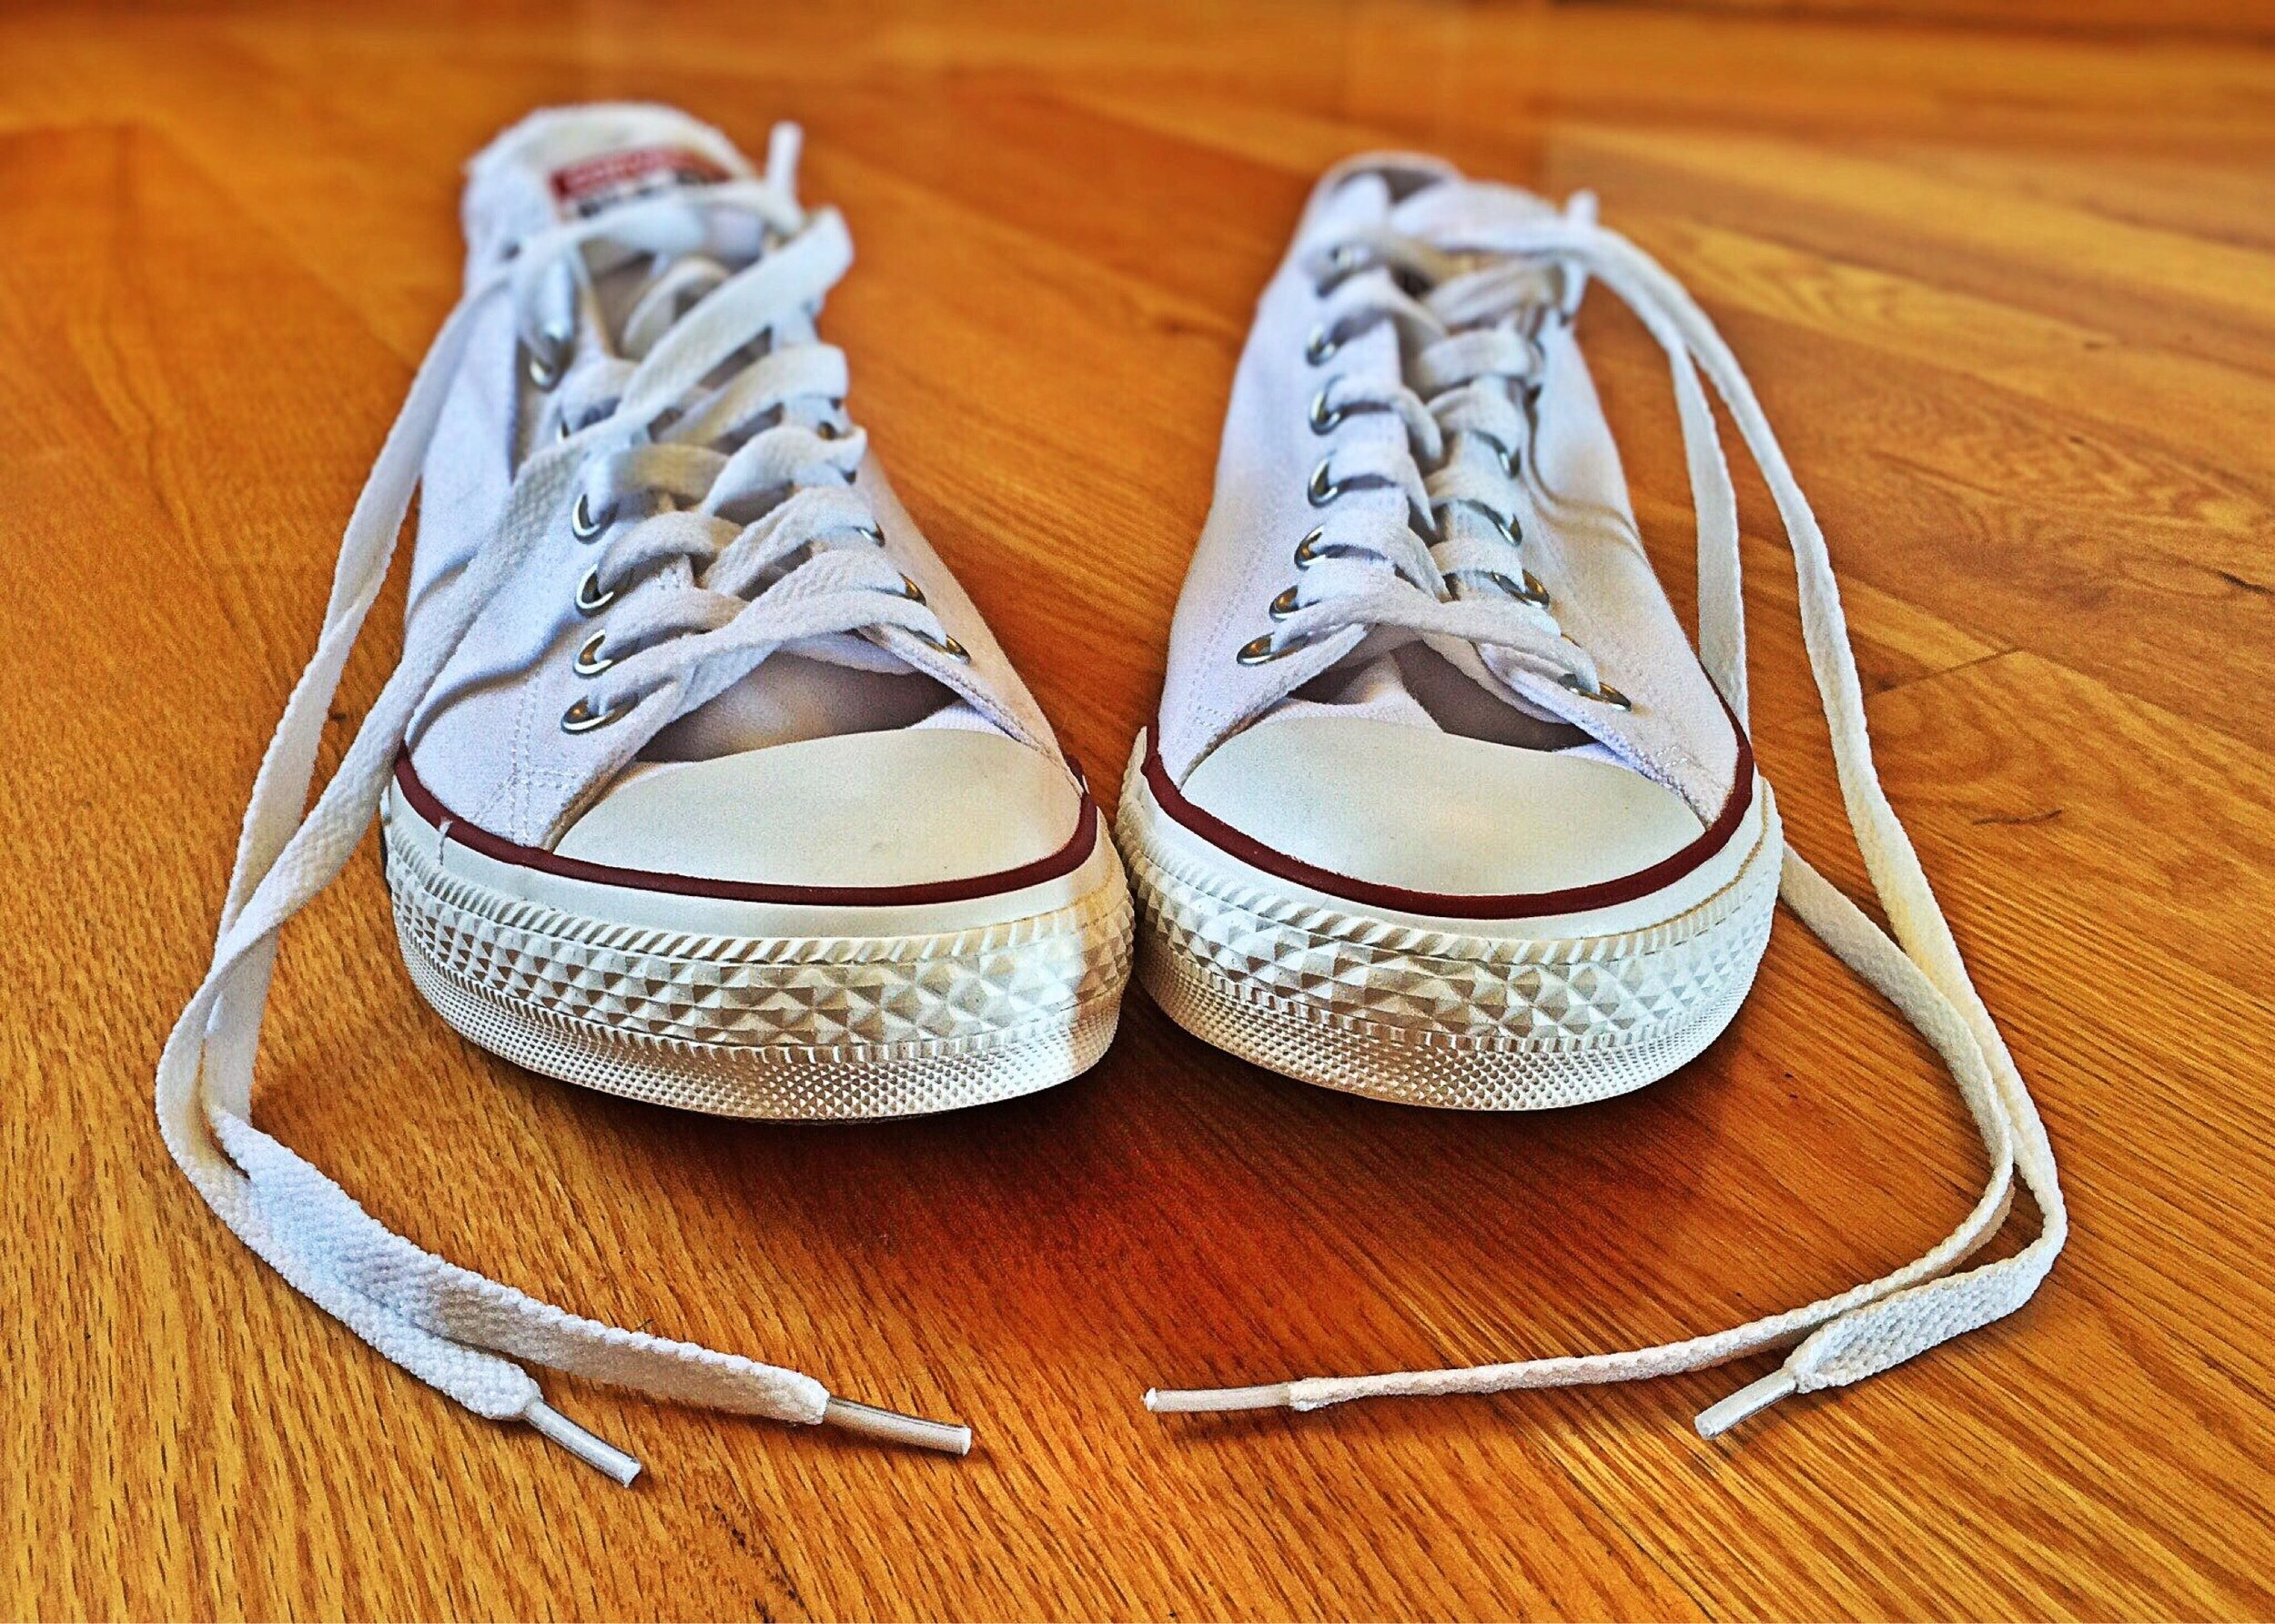 Mom's Goop for Cleaning Chuck Taylor Converse All Stars - After